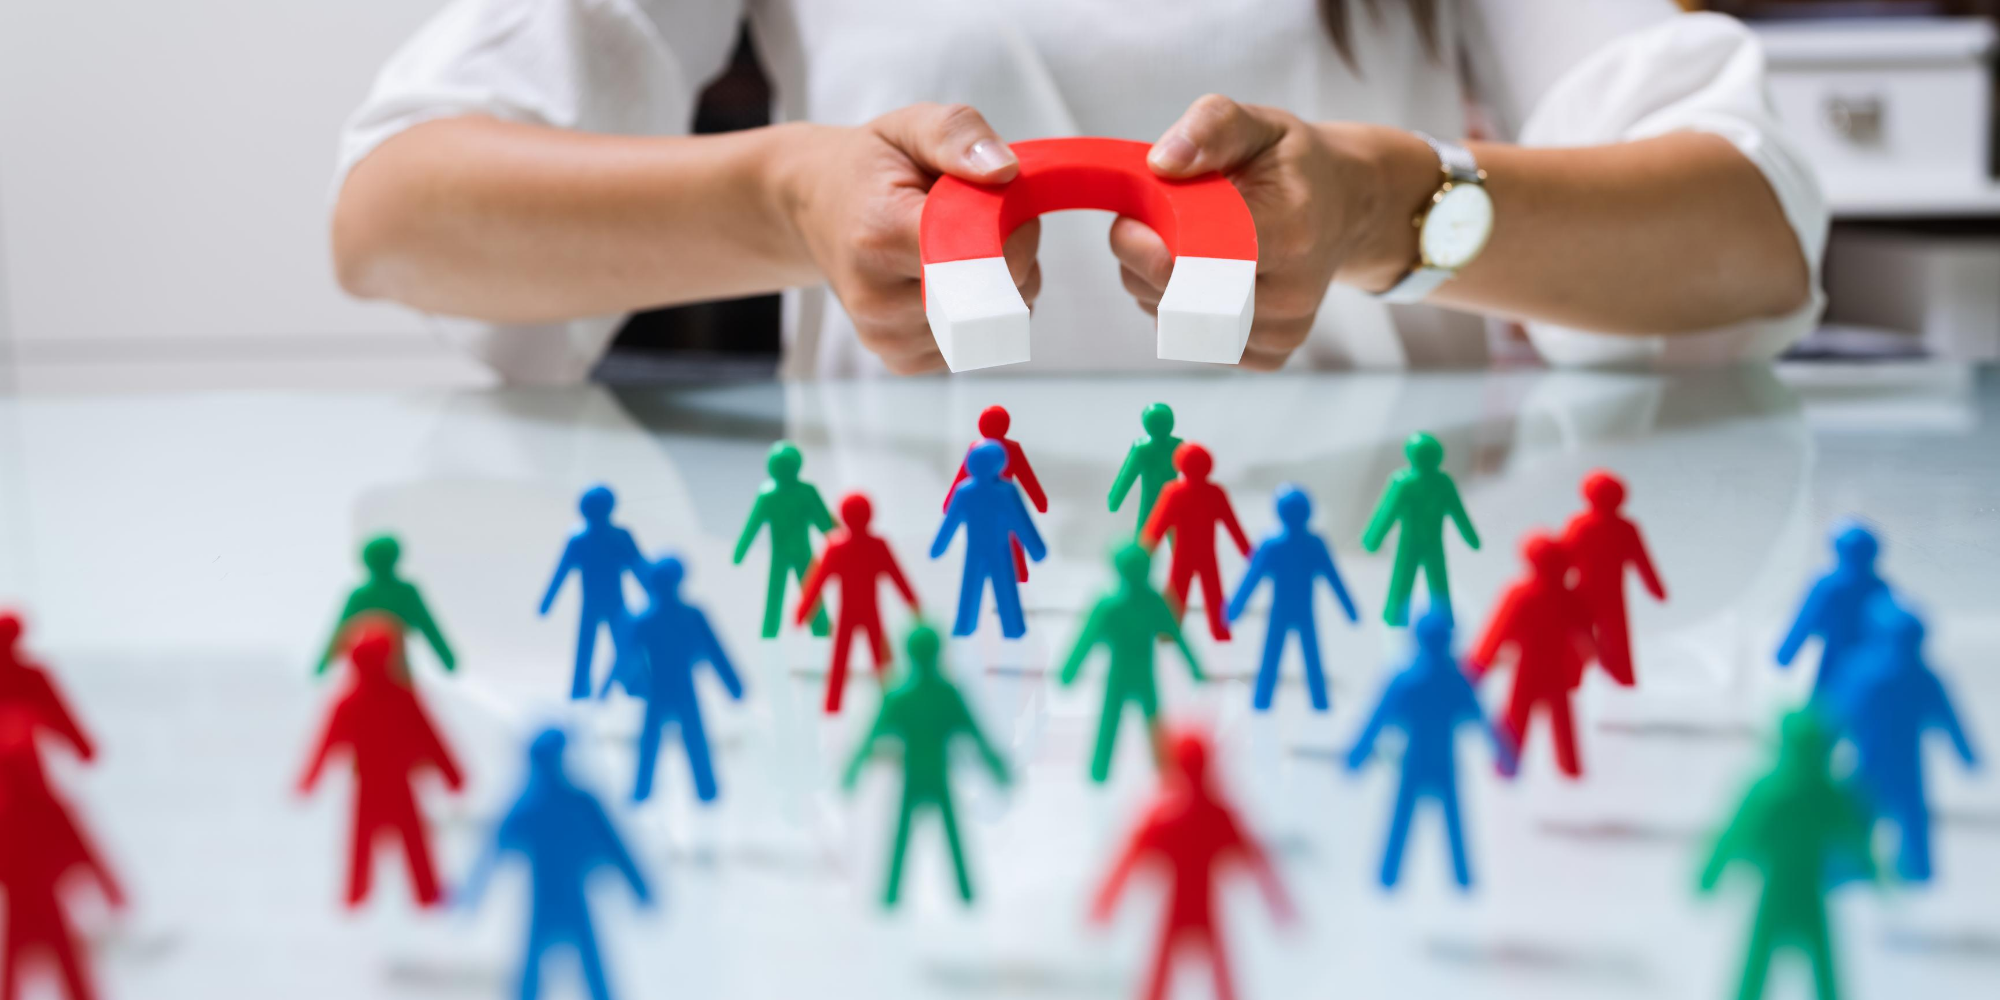 10 Ways to Drive Lead Generation for a Small Business